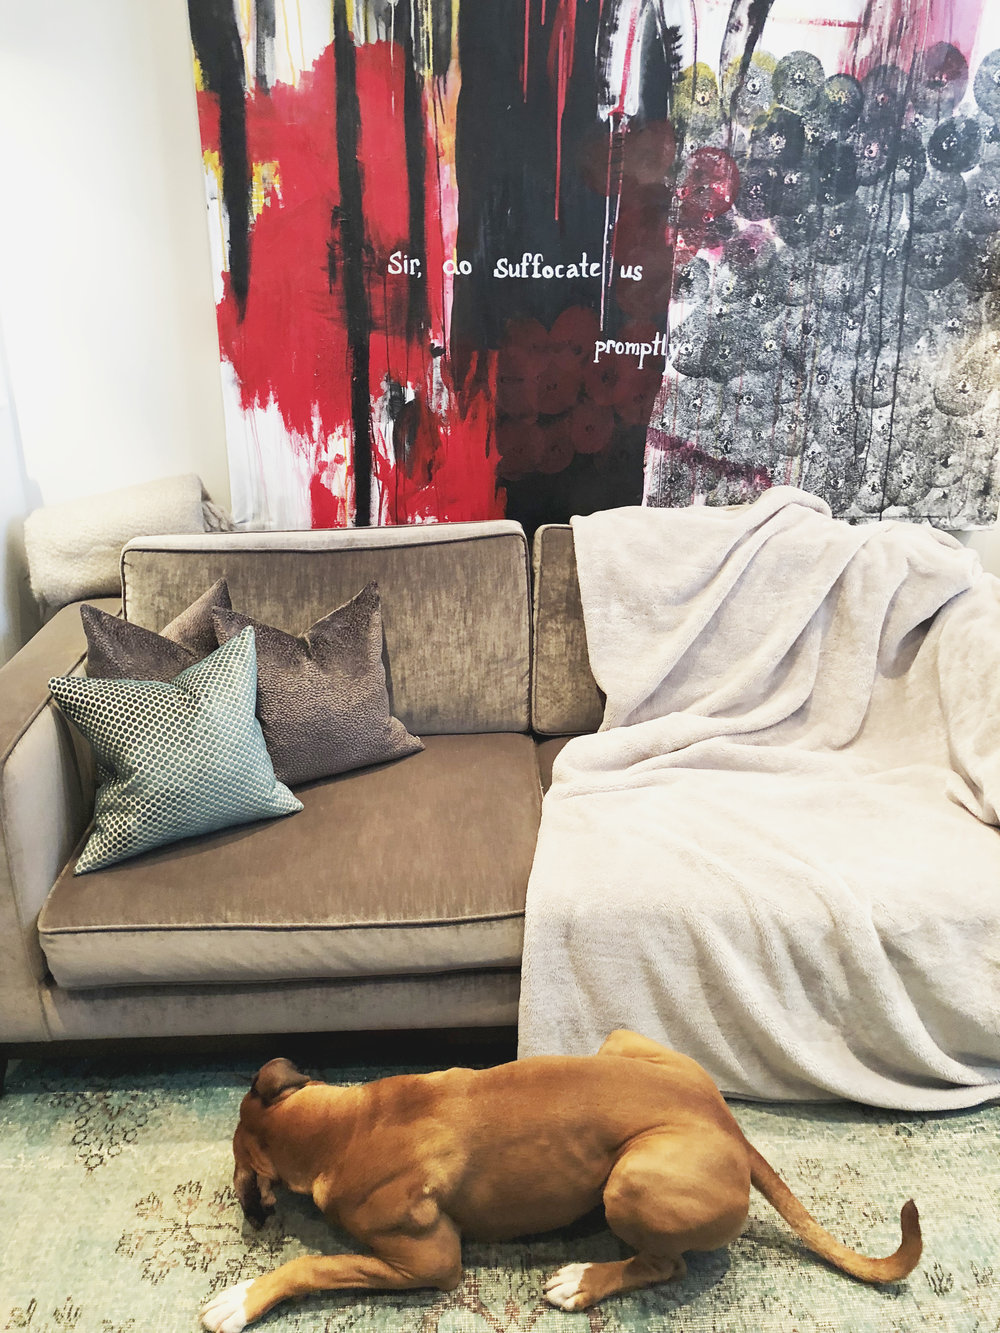 Protect your sofa - I bought my velvet The Sofa & Chair Company sofa before Bailey came along, so I needed to find a solution to have cuddles without completely destroying it. These blankets are pet hair resistant and can be thrown in the washing machine…easy!